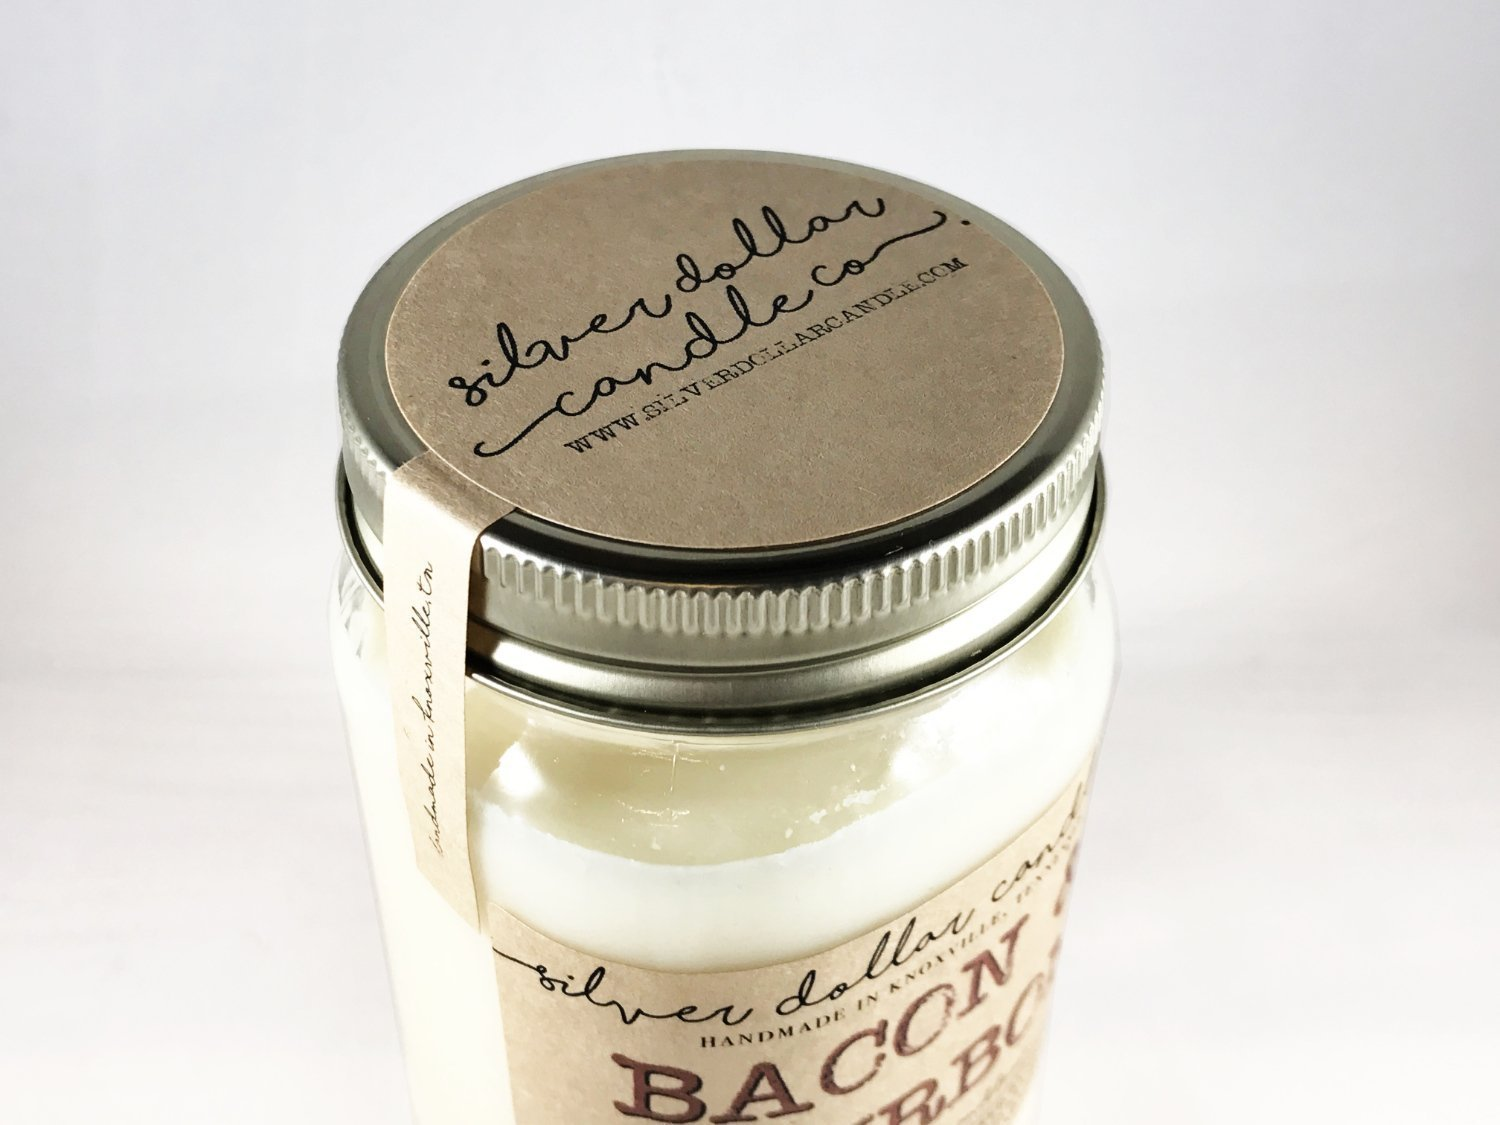 Mason Jar Candle 16oz Mulled Cider Scent 100/% Soy Wax Scented Candle by Silver Dollar Candle Co.